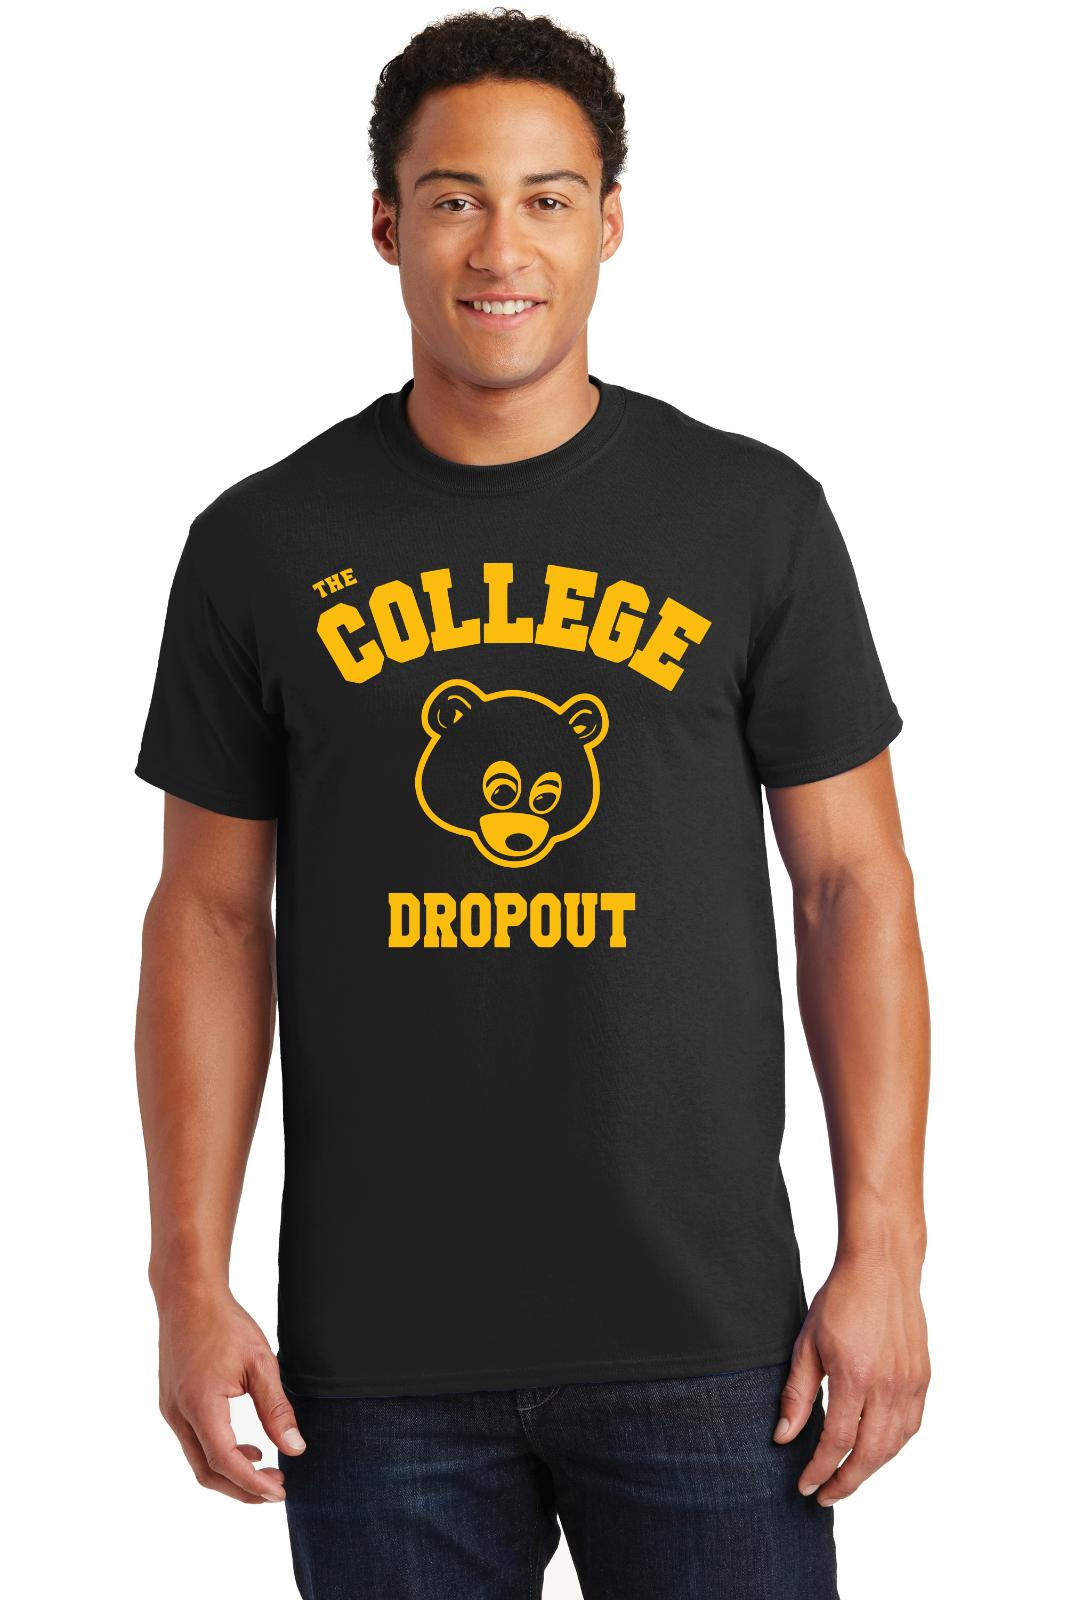 The College Dropout T-shirt Kanye West Feel Pablo RAP Musique Tee ShirtsFunny livraison gratuite Unisexe Casual top